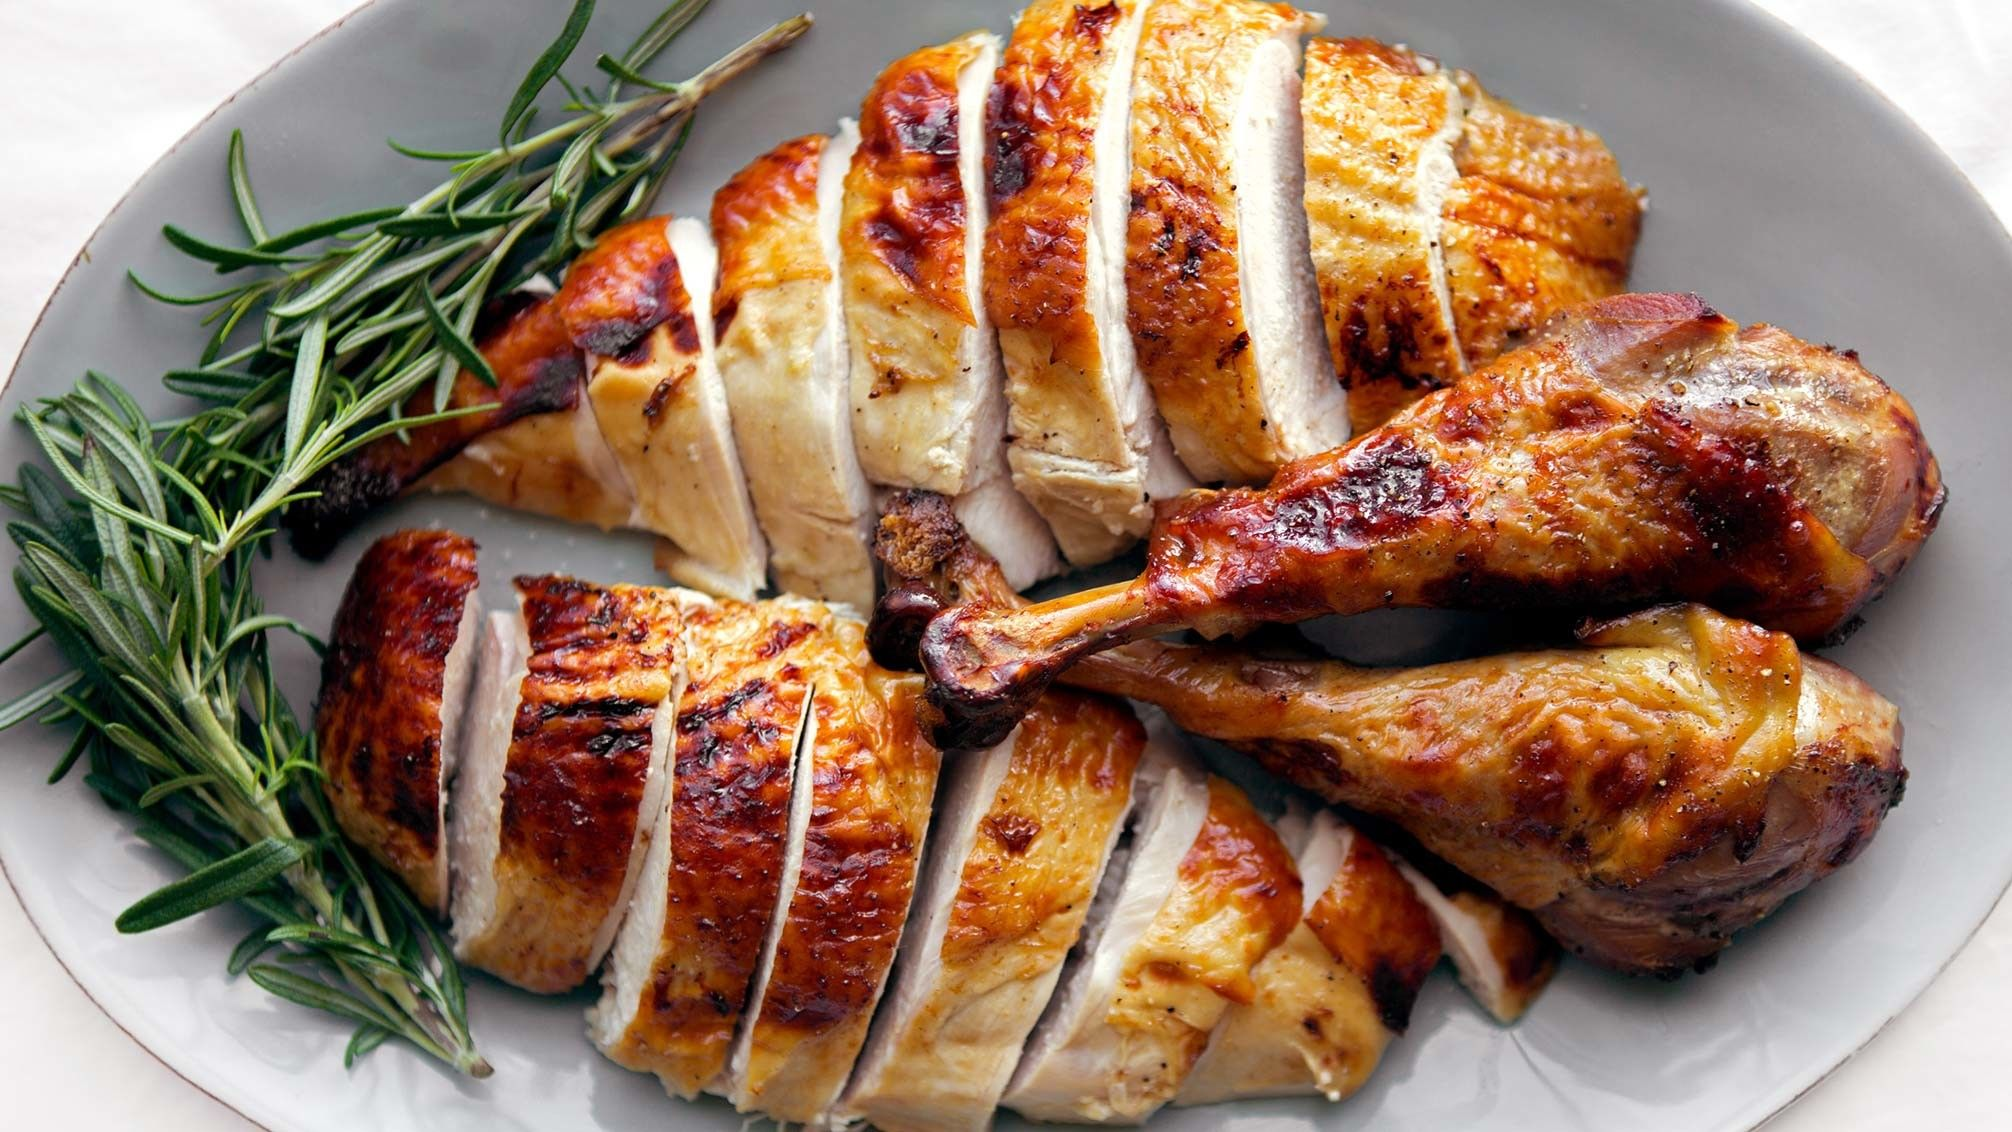 I Just Discovered This Amazing Recipe Buttermilk Brined Turkey By Chef Williams Sonoma Turkey Brine Recipes Buttermilk Brine Turkey Food Network Recipes